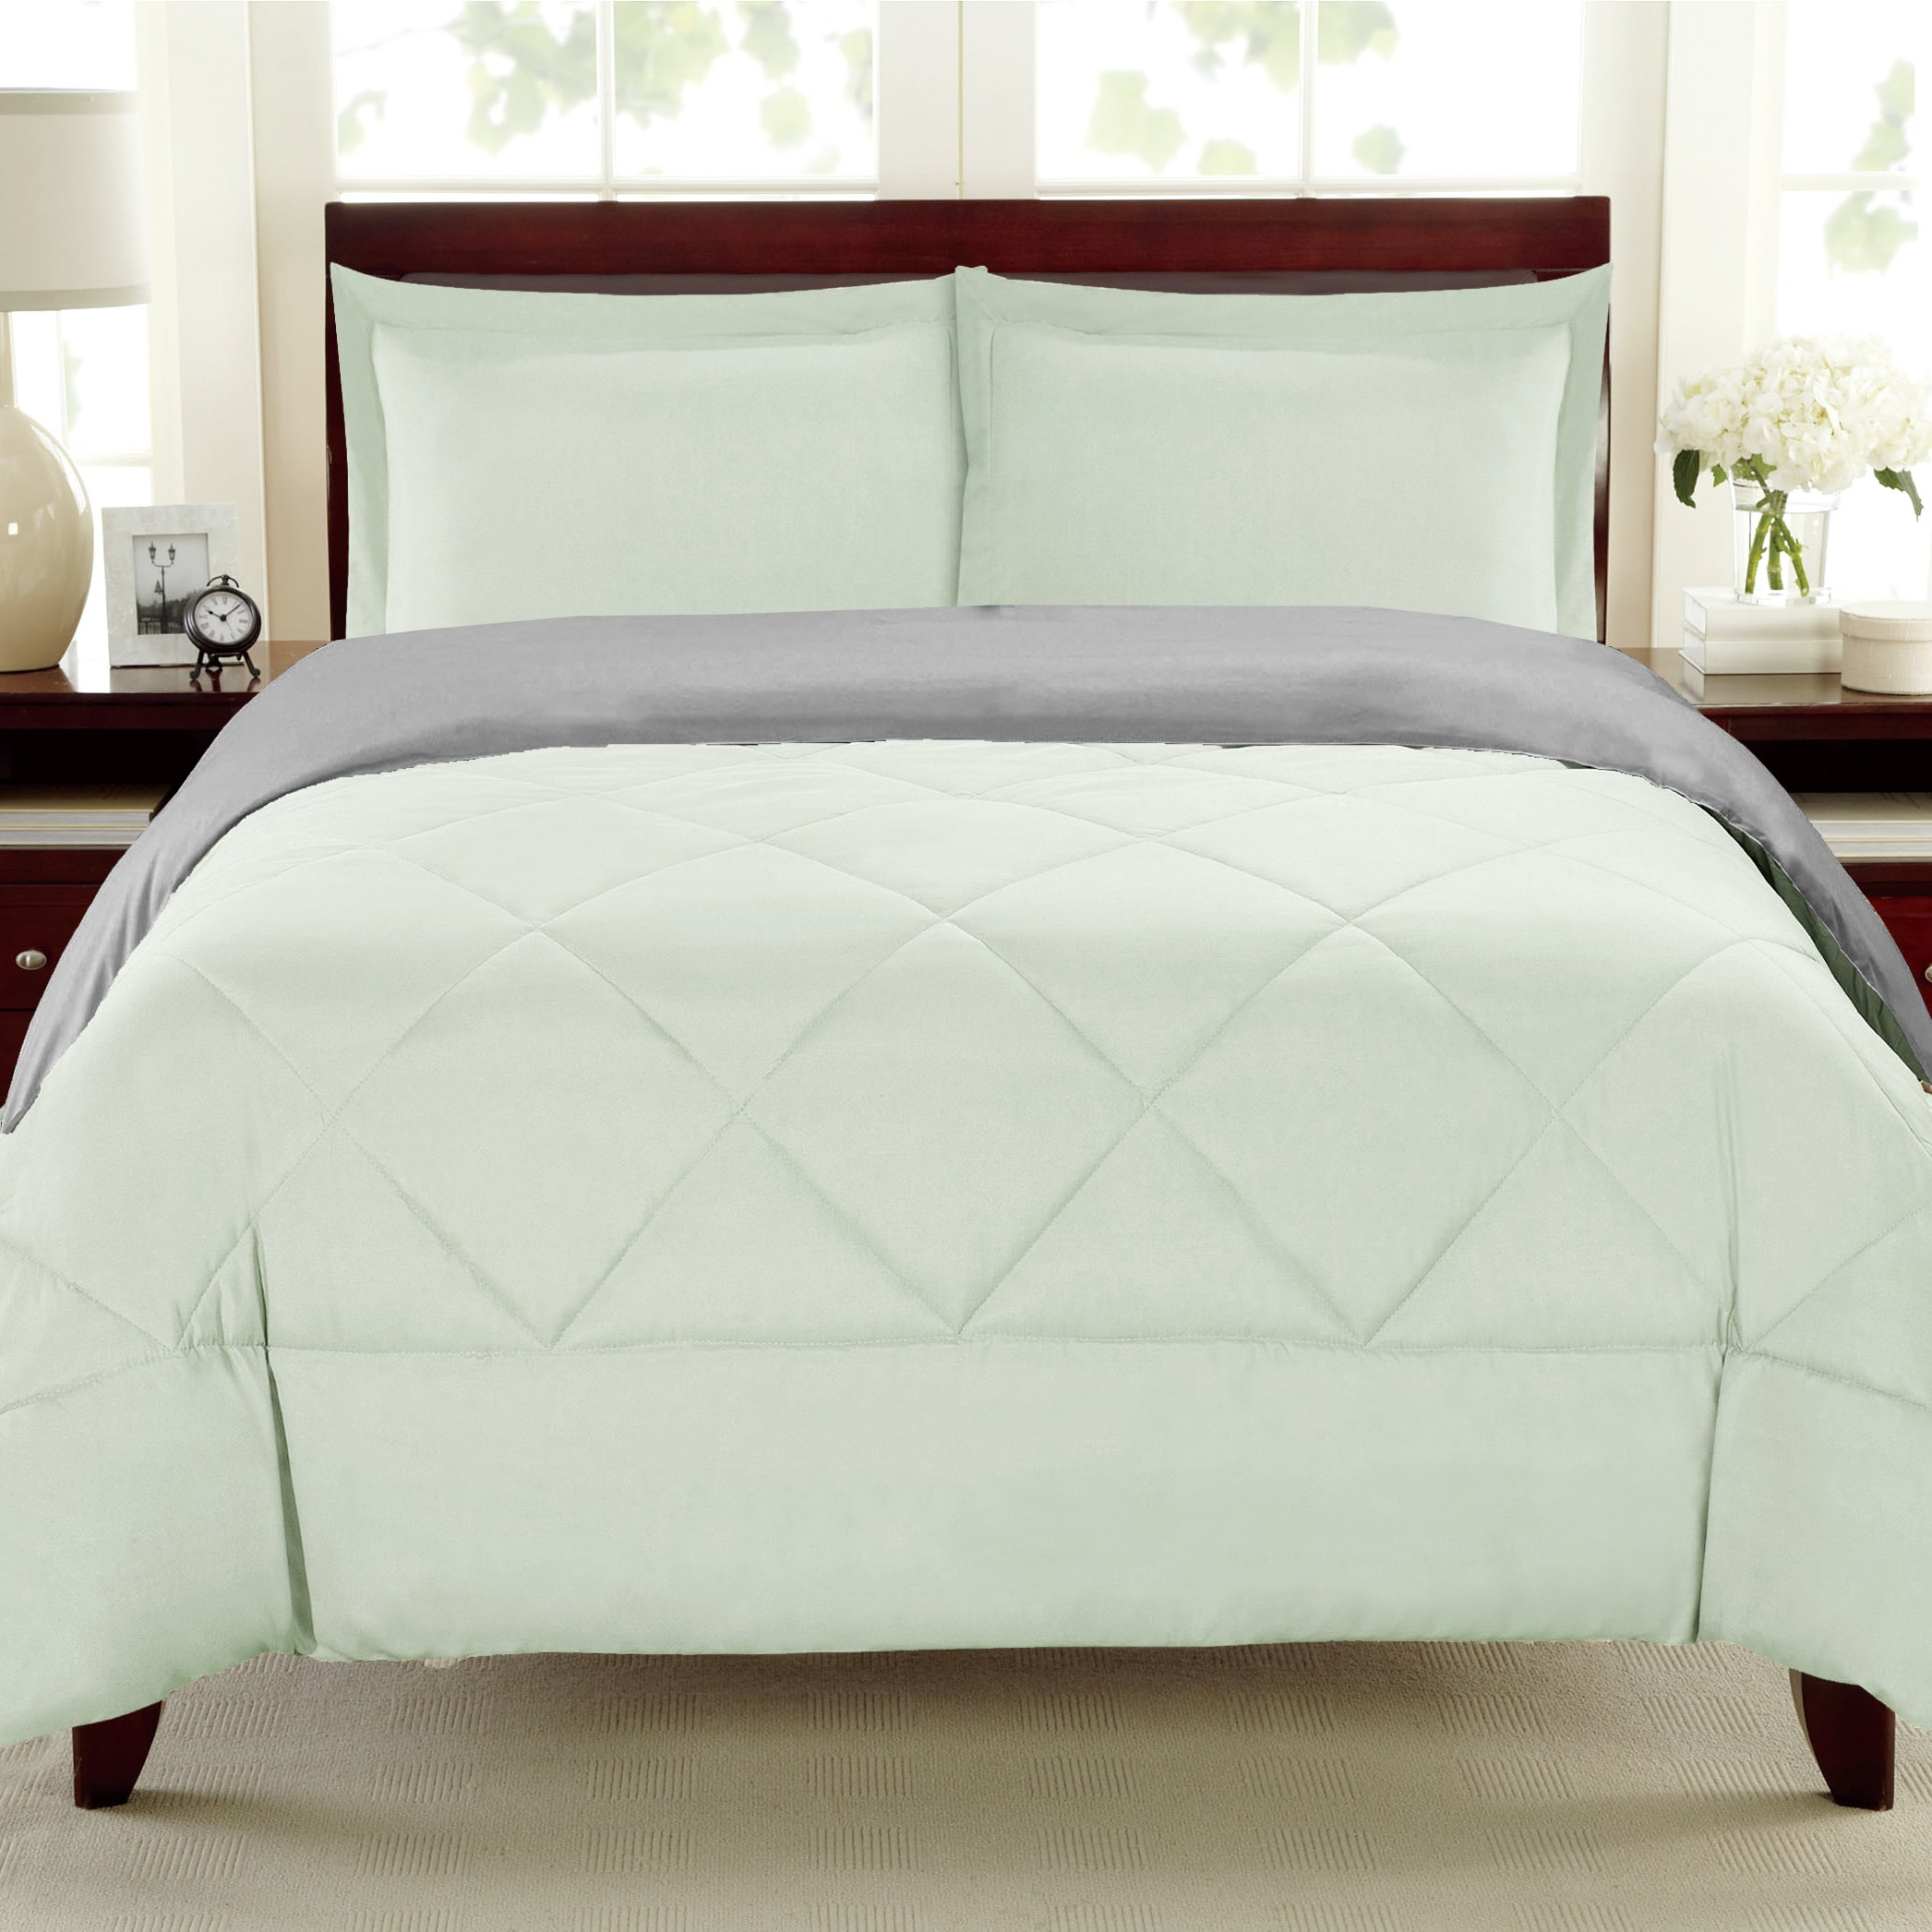 bed bath n more Reversible All Season Down Alternative Grey and Mint 3-piece Comforter Set